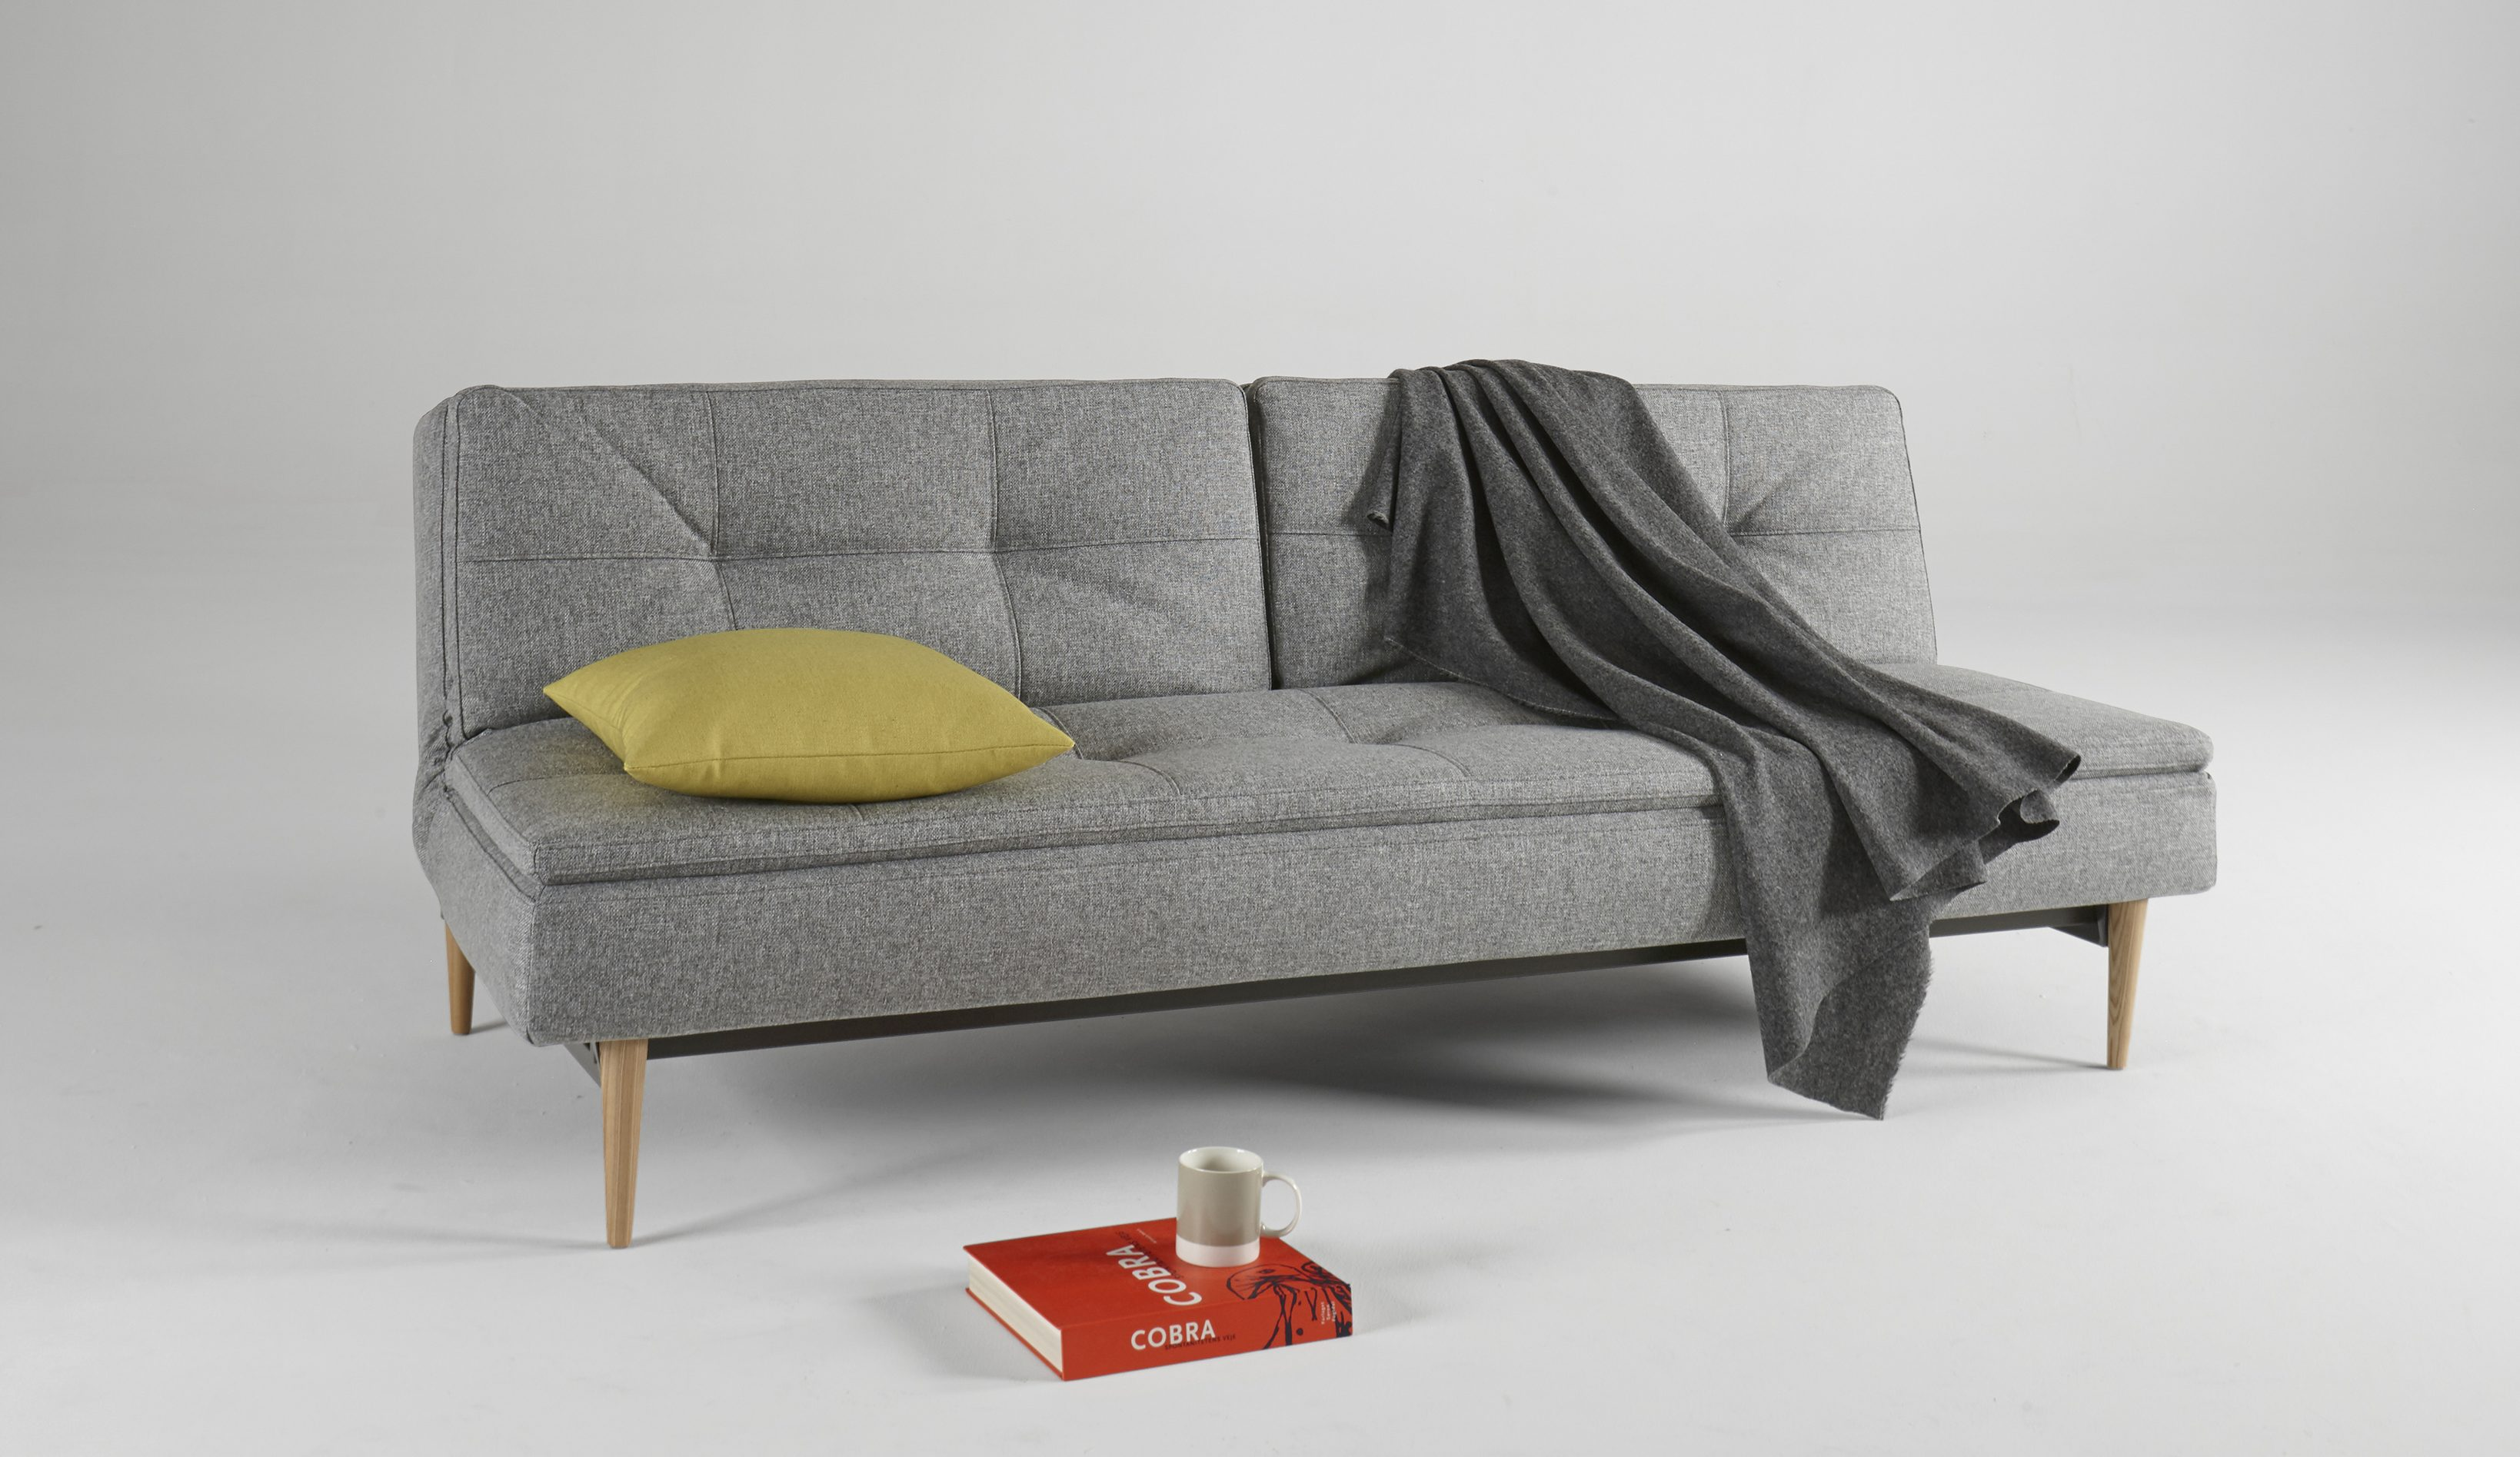 Dublexo-sofa-bed-565-twist-granite-sofa-position-01